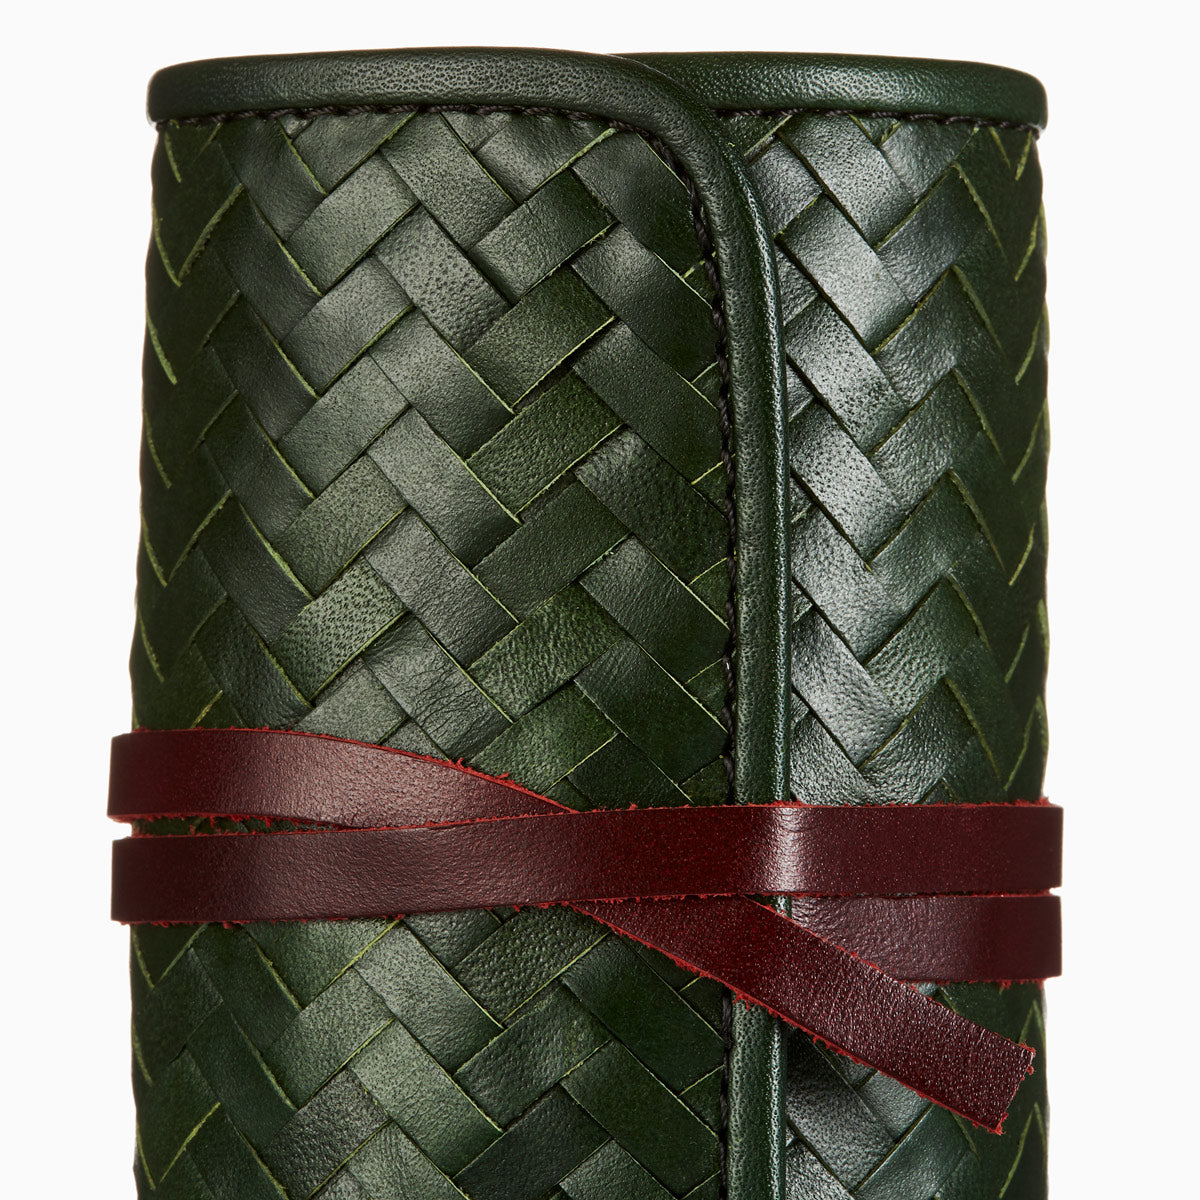 Herringbone Grooming Roll, Christmas Edition in Green: Men's Manicure Set